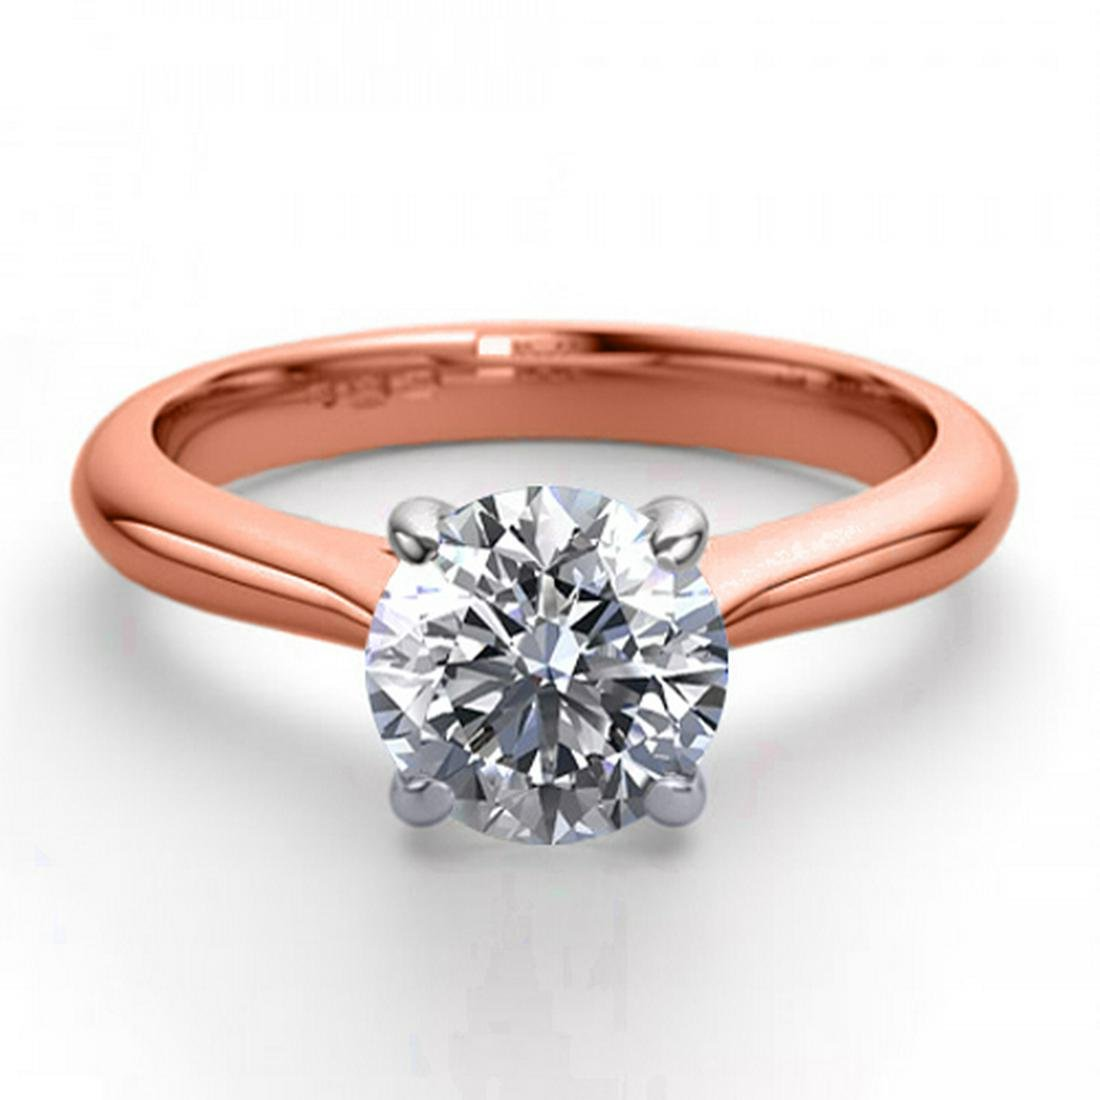 14K Rose Gold 1.24 ctw Natural Diamond Solitaire Ring -